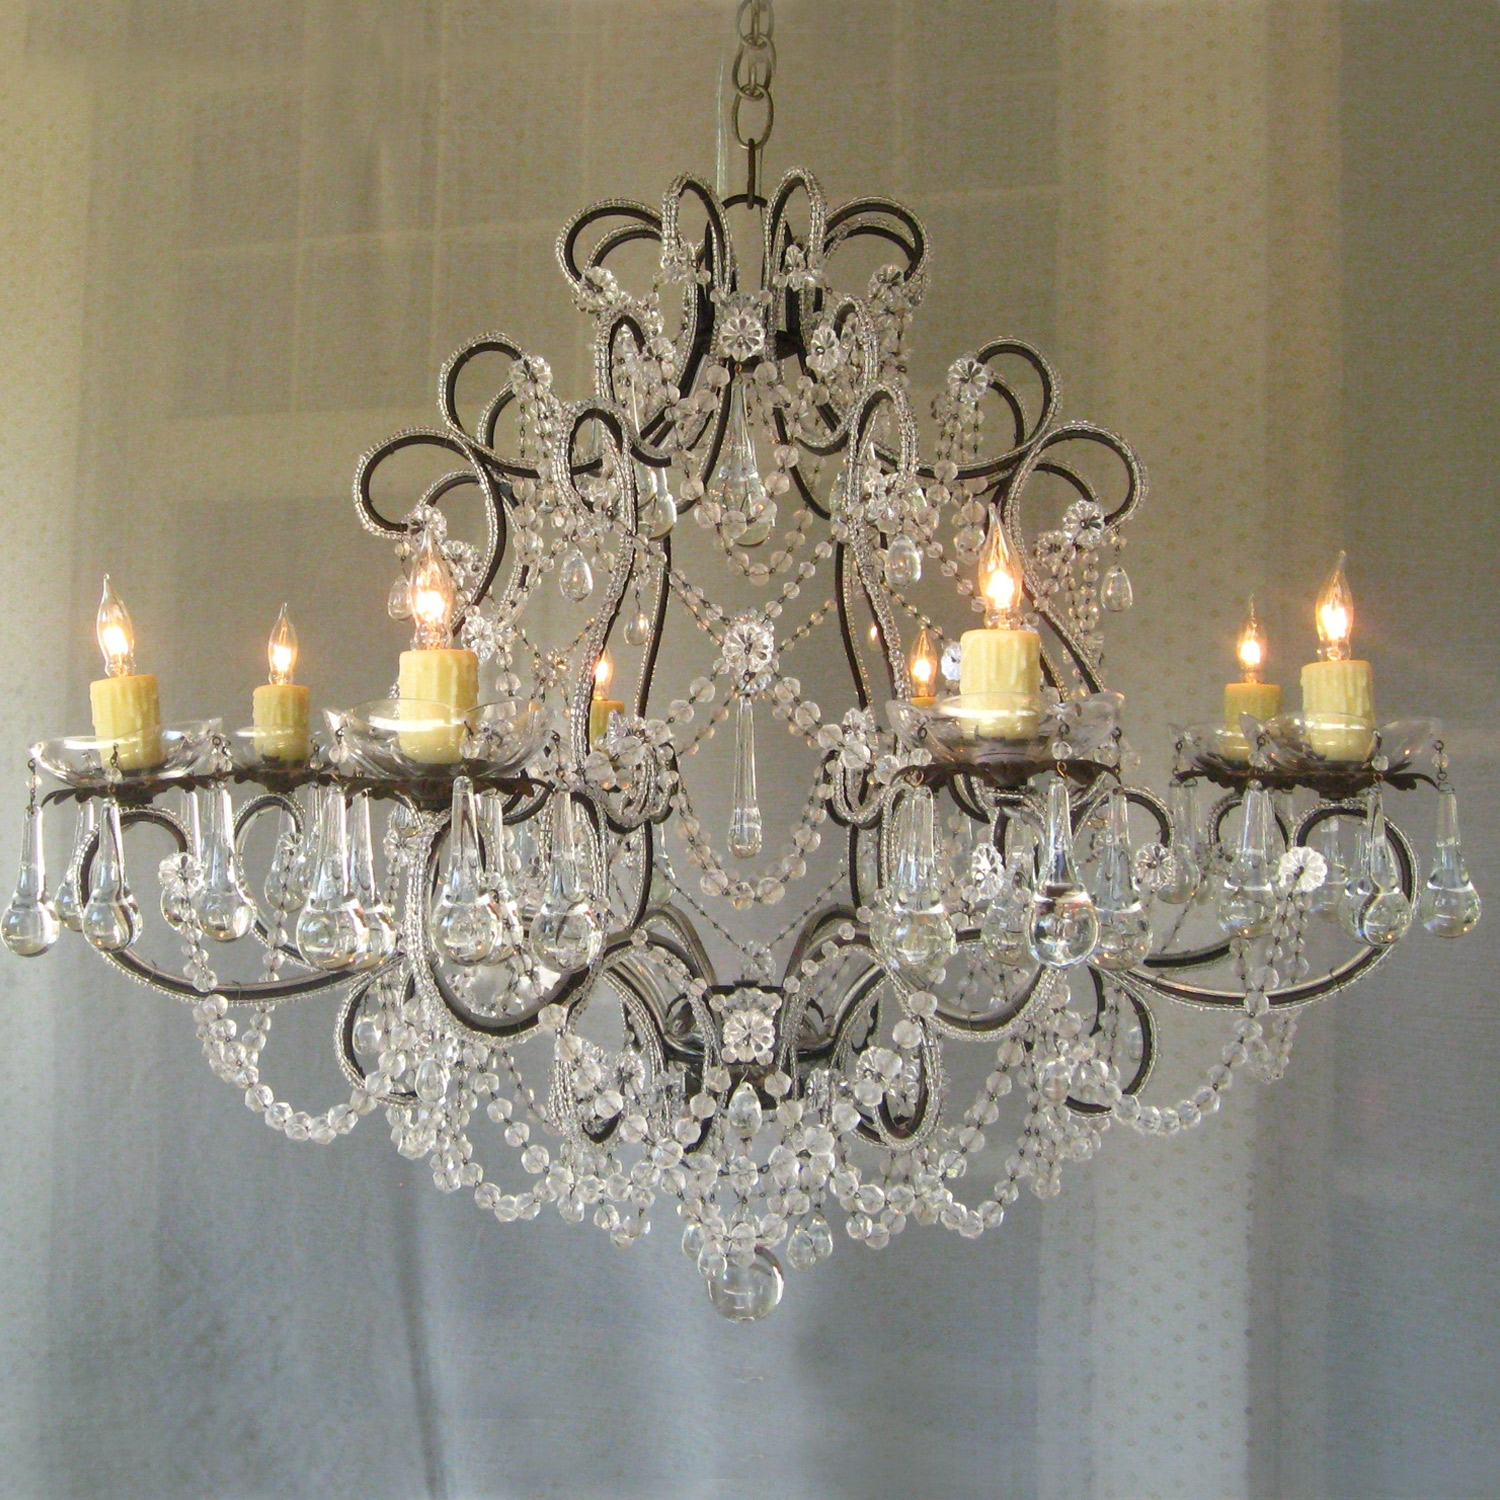 Featured Image of Country Chic Chandelier